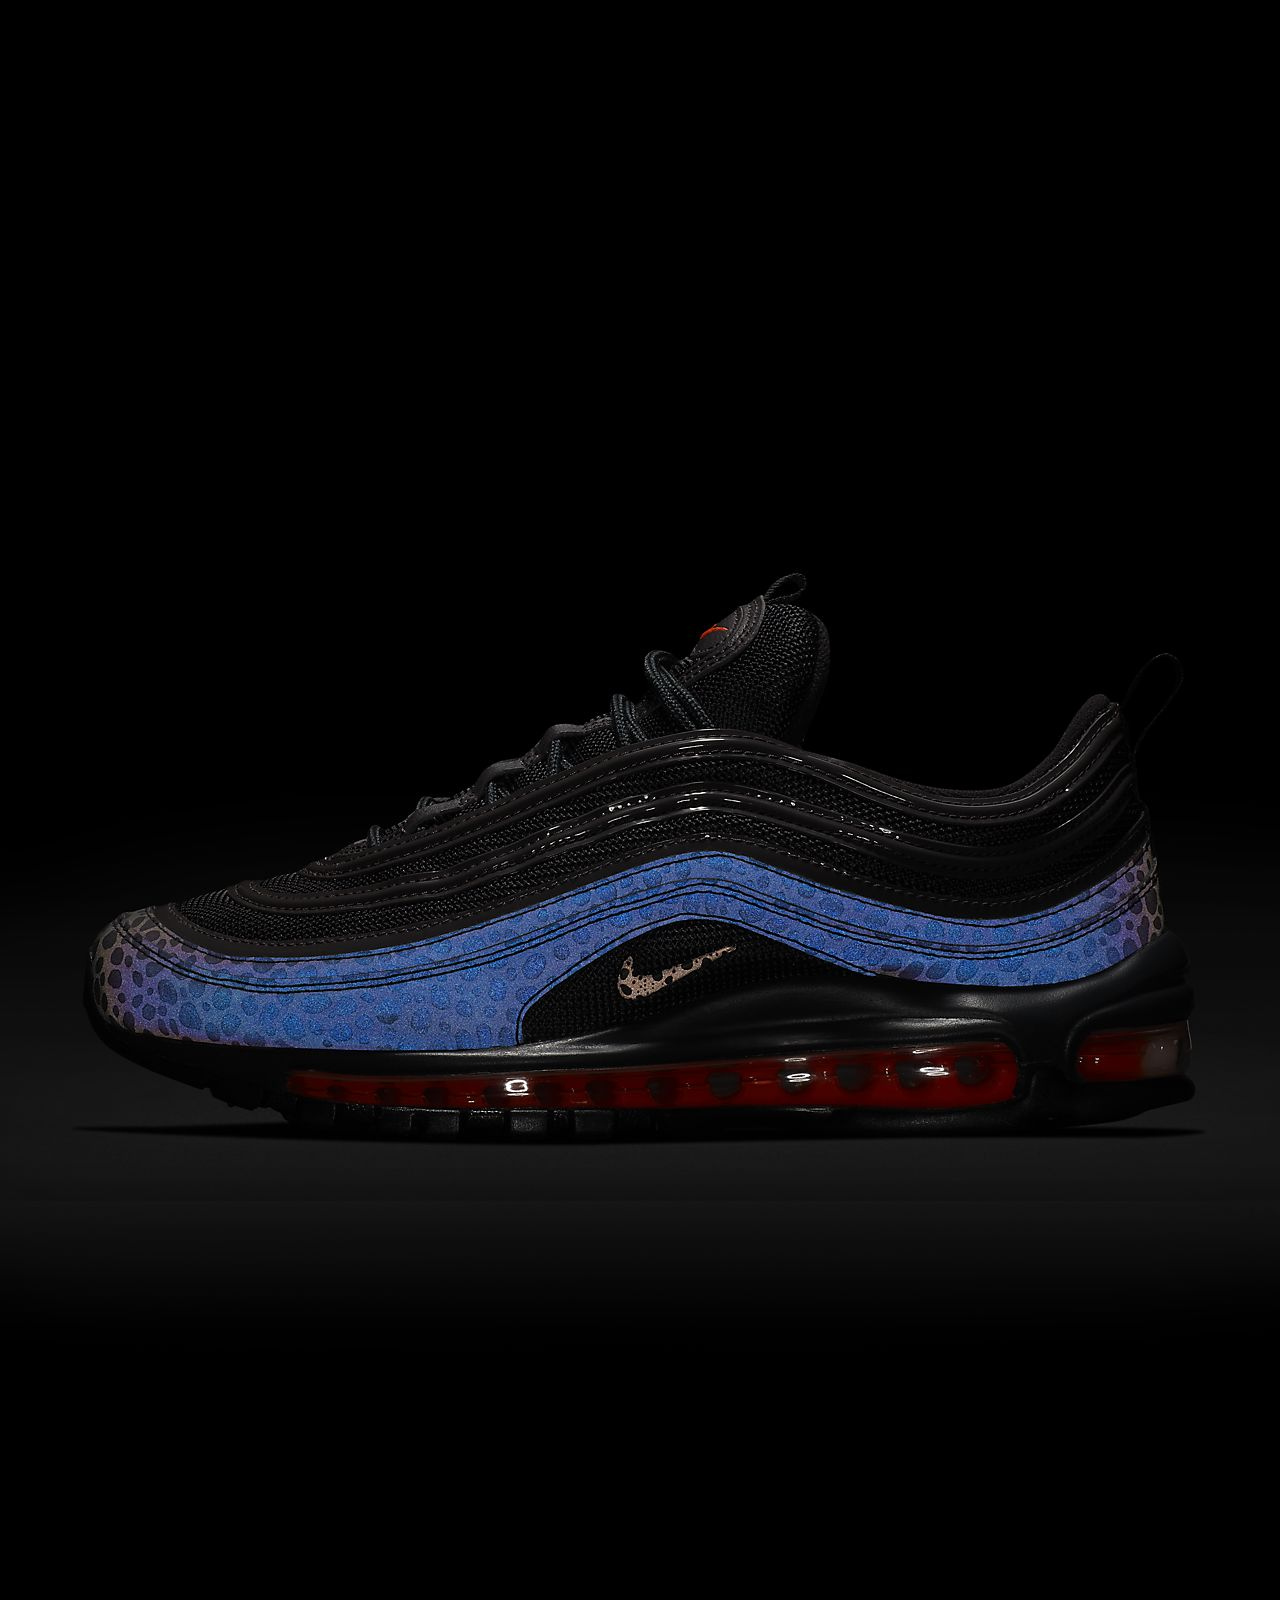 Homme Nike Max Se Chaussure 97 Pour Reflective Air vmON8nw0y